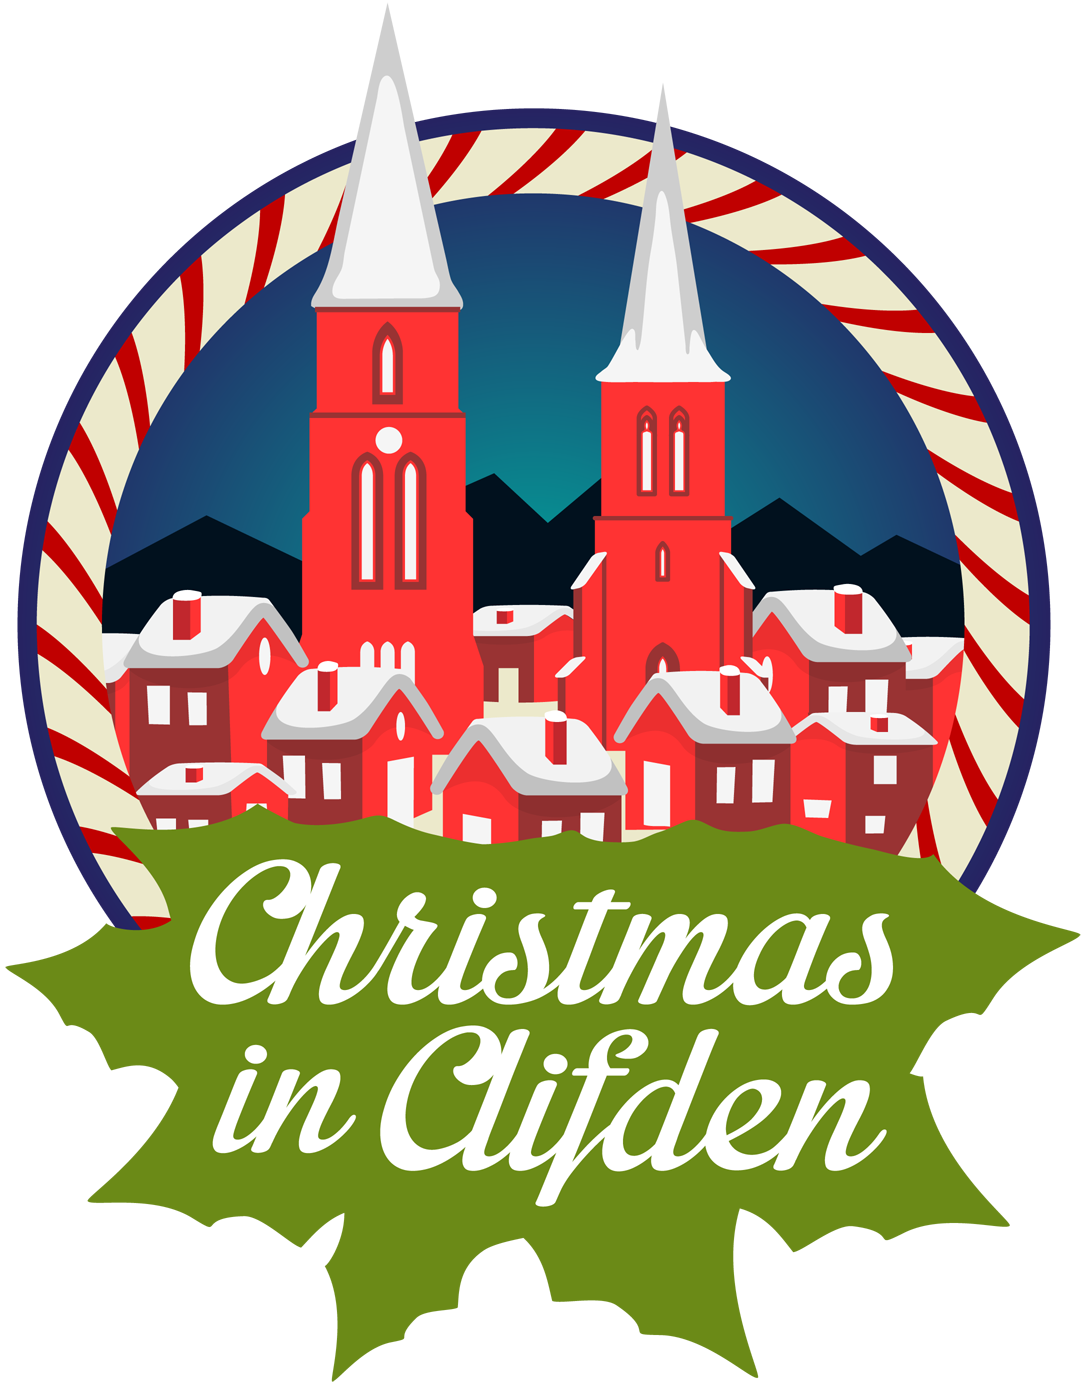 Christmas in Clifden